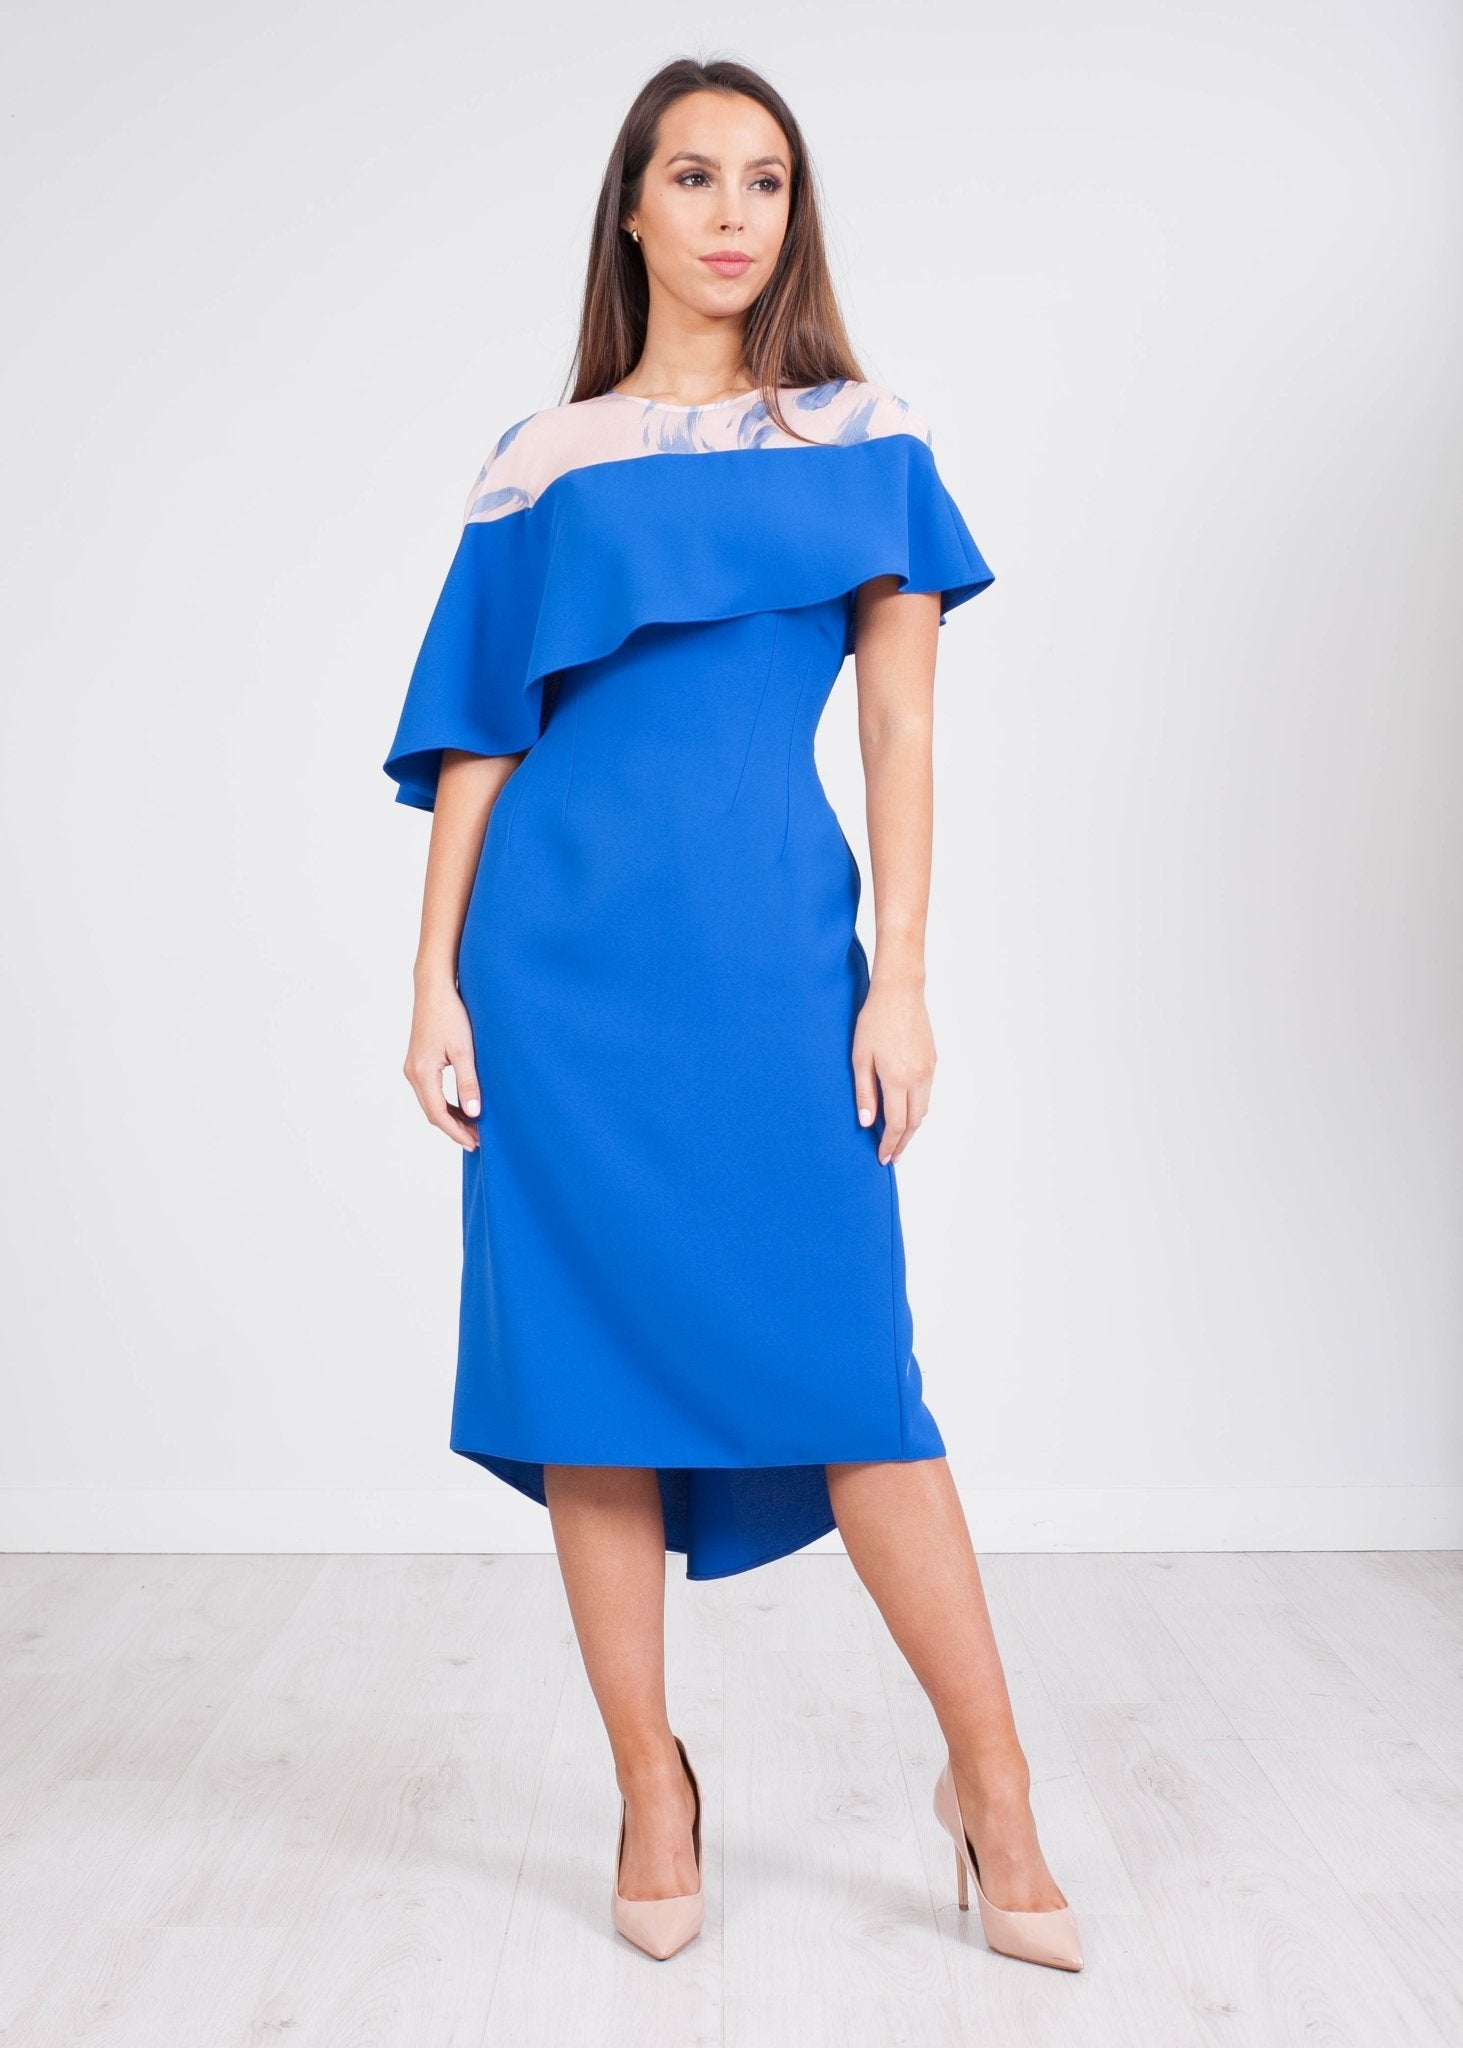 Carla Blue Ivanna Dress - The Walk in Wardrobe